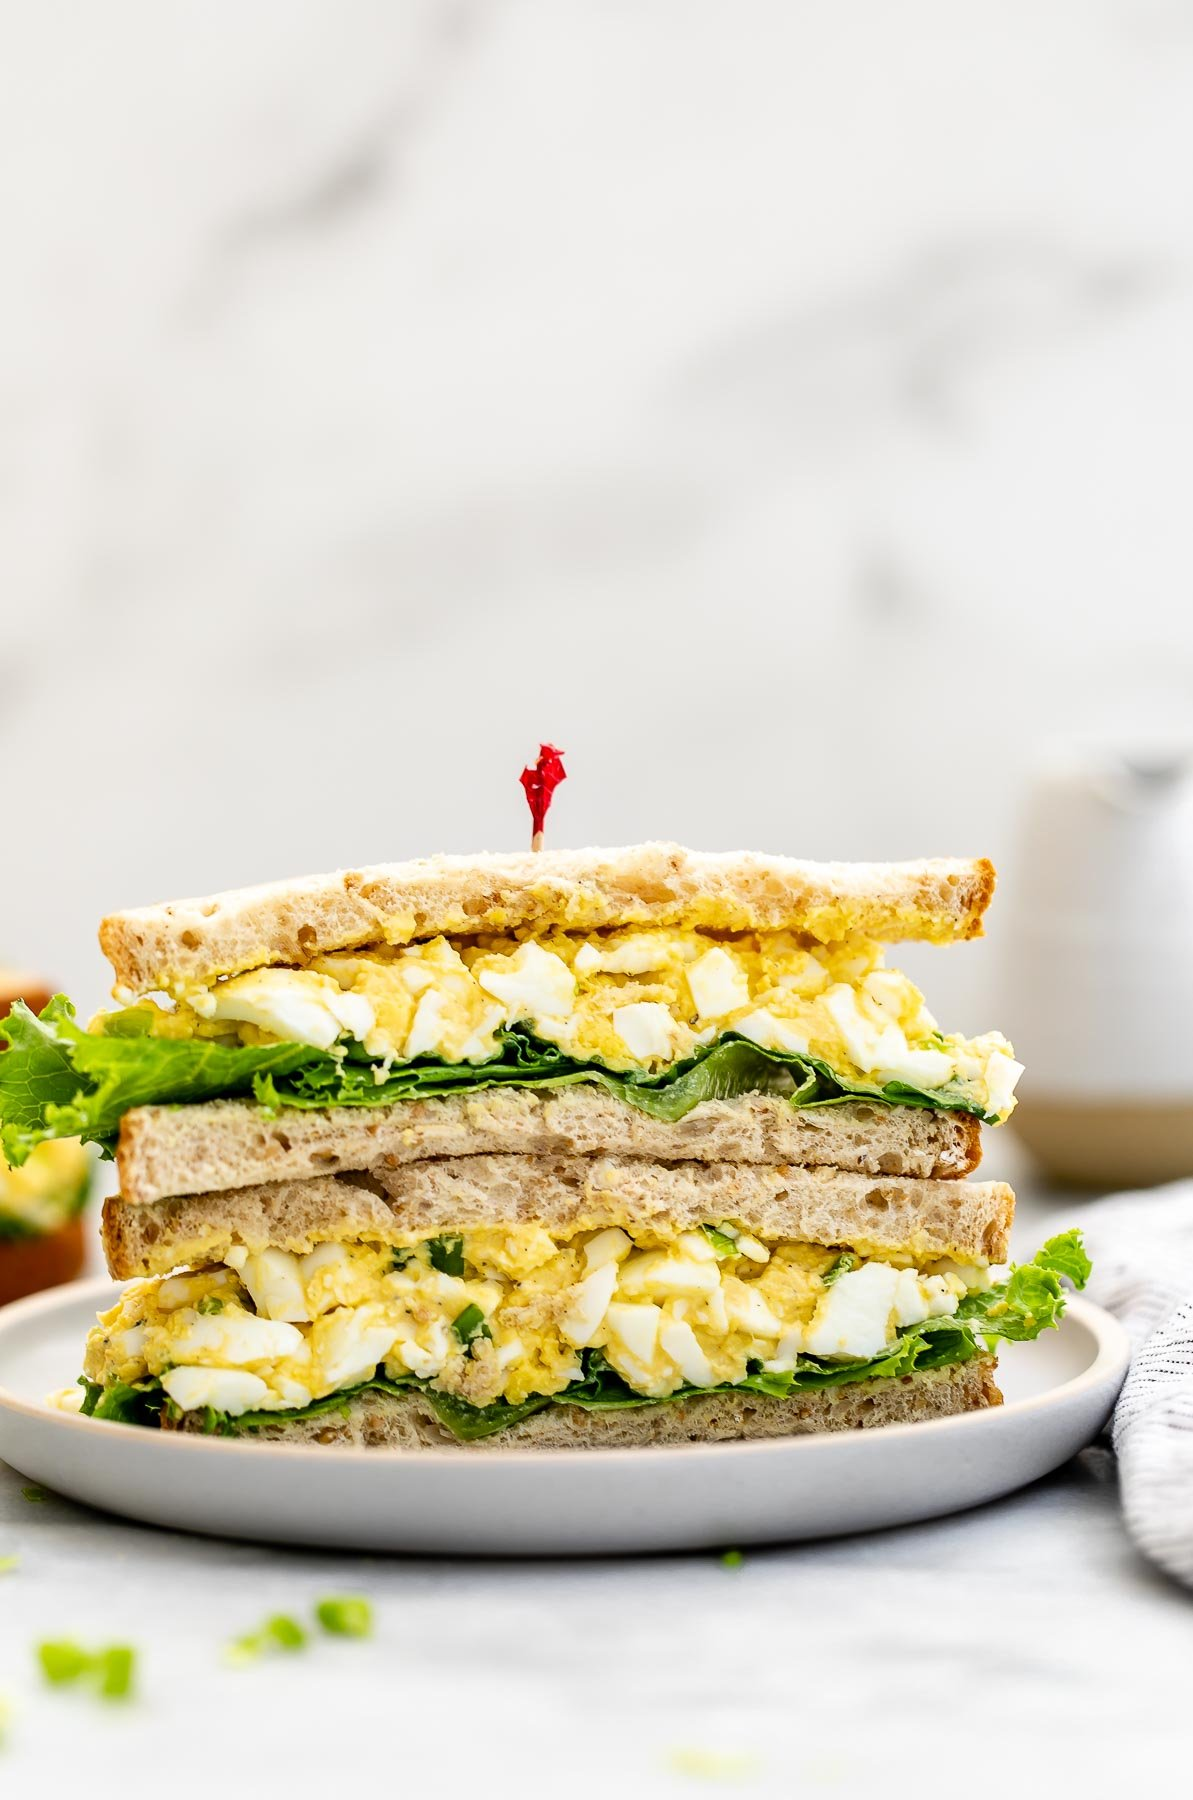 Healthy egg salad sandwich cut in half on a small plate.